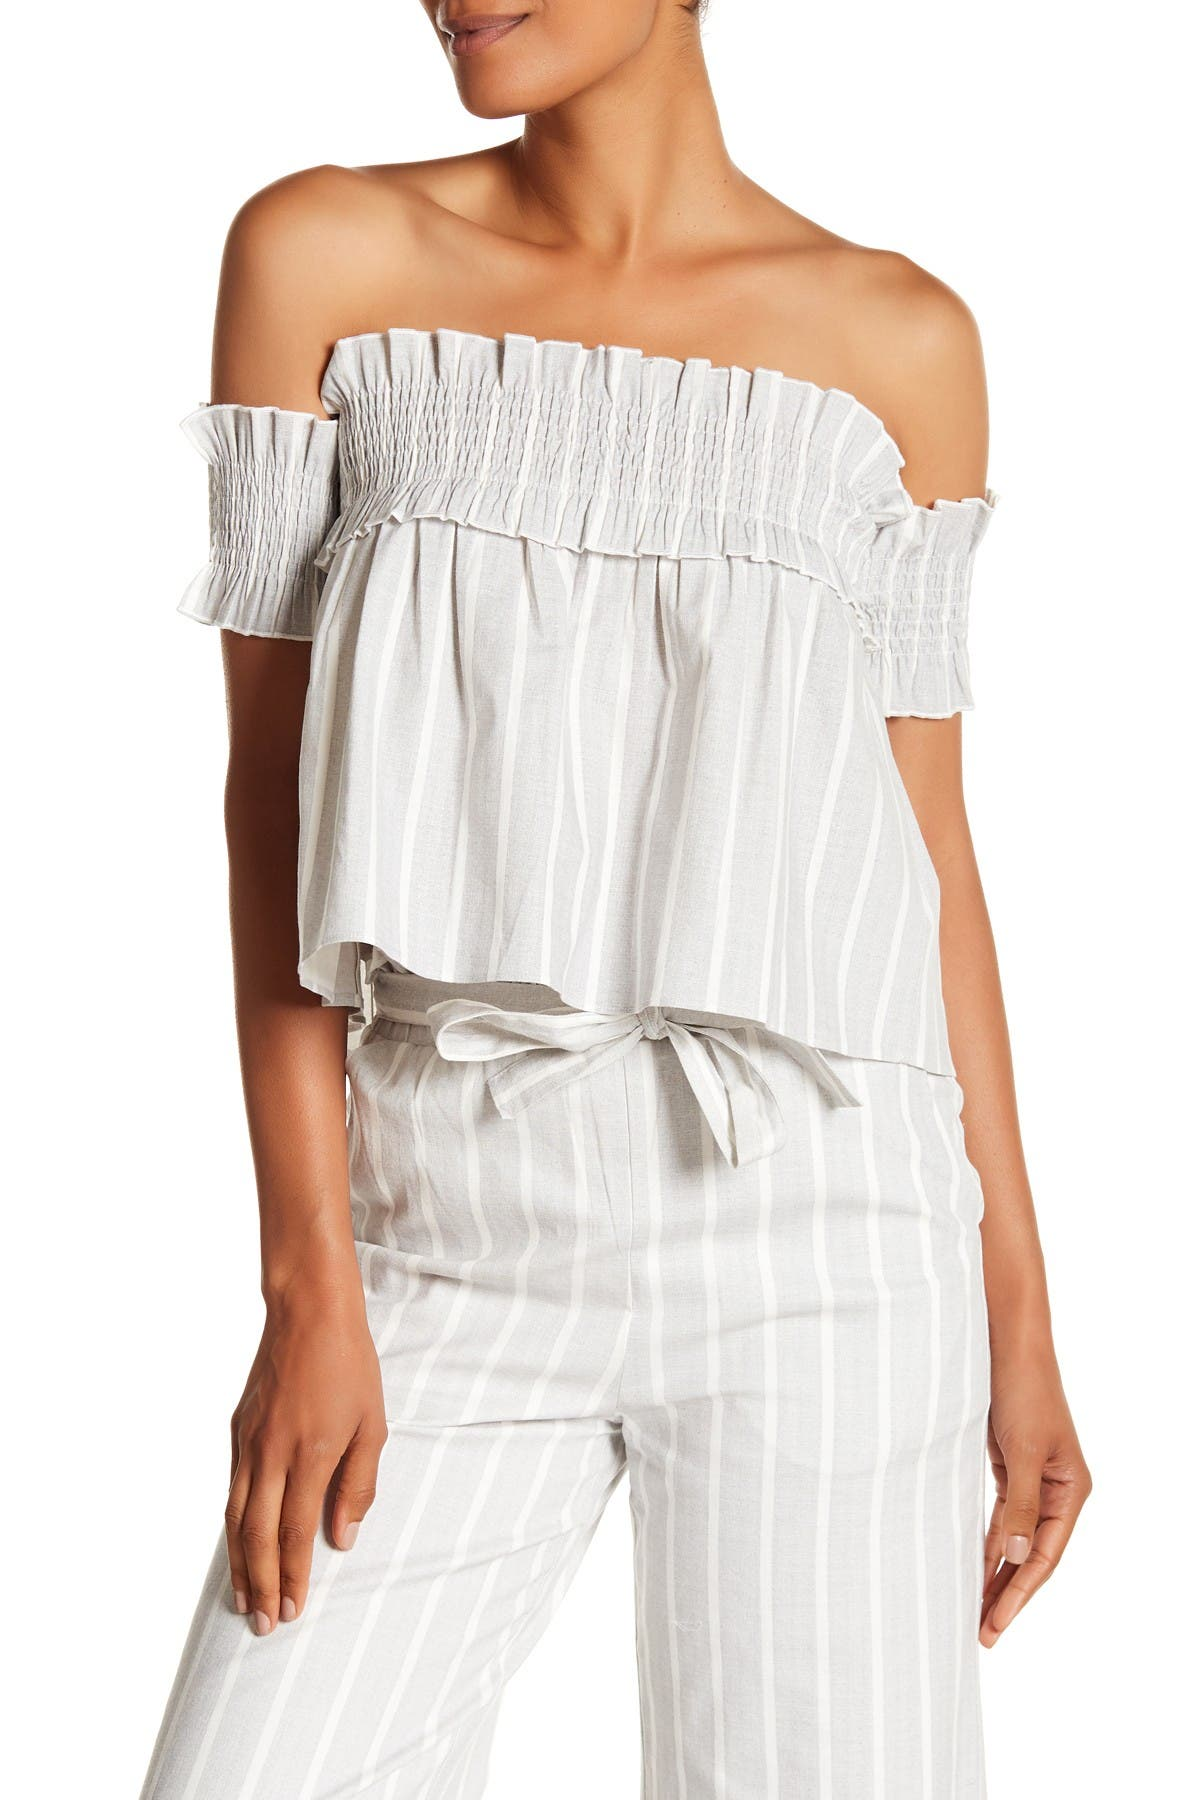 Image of English Factory Striped Smocked Off-the-Shoulder Top